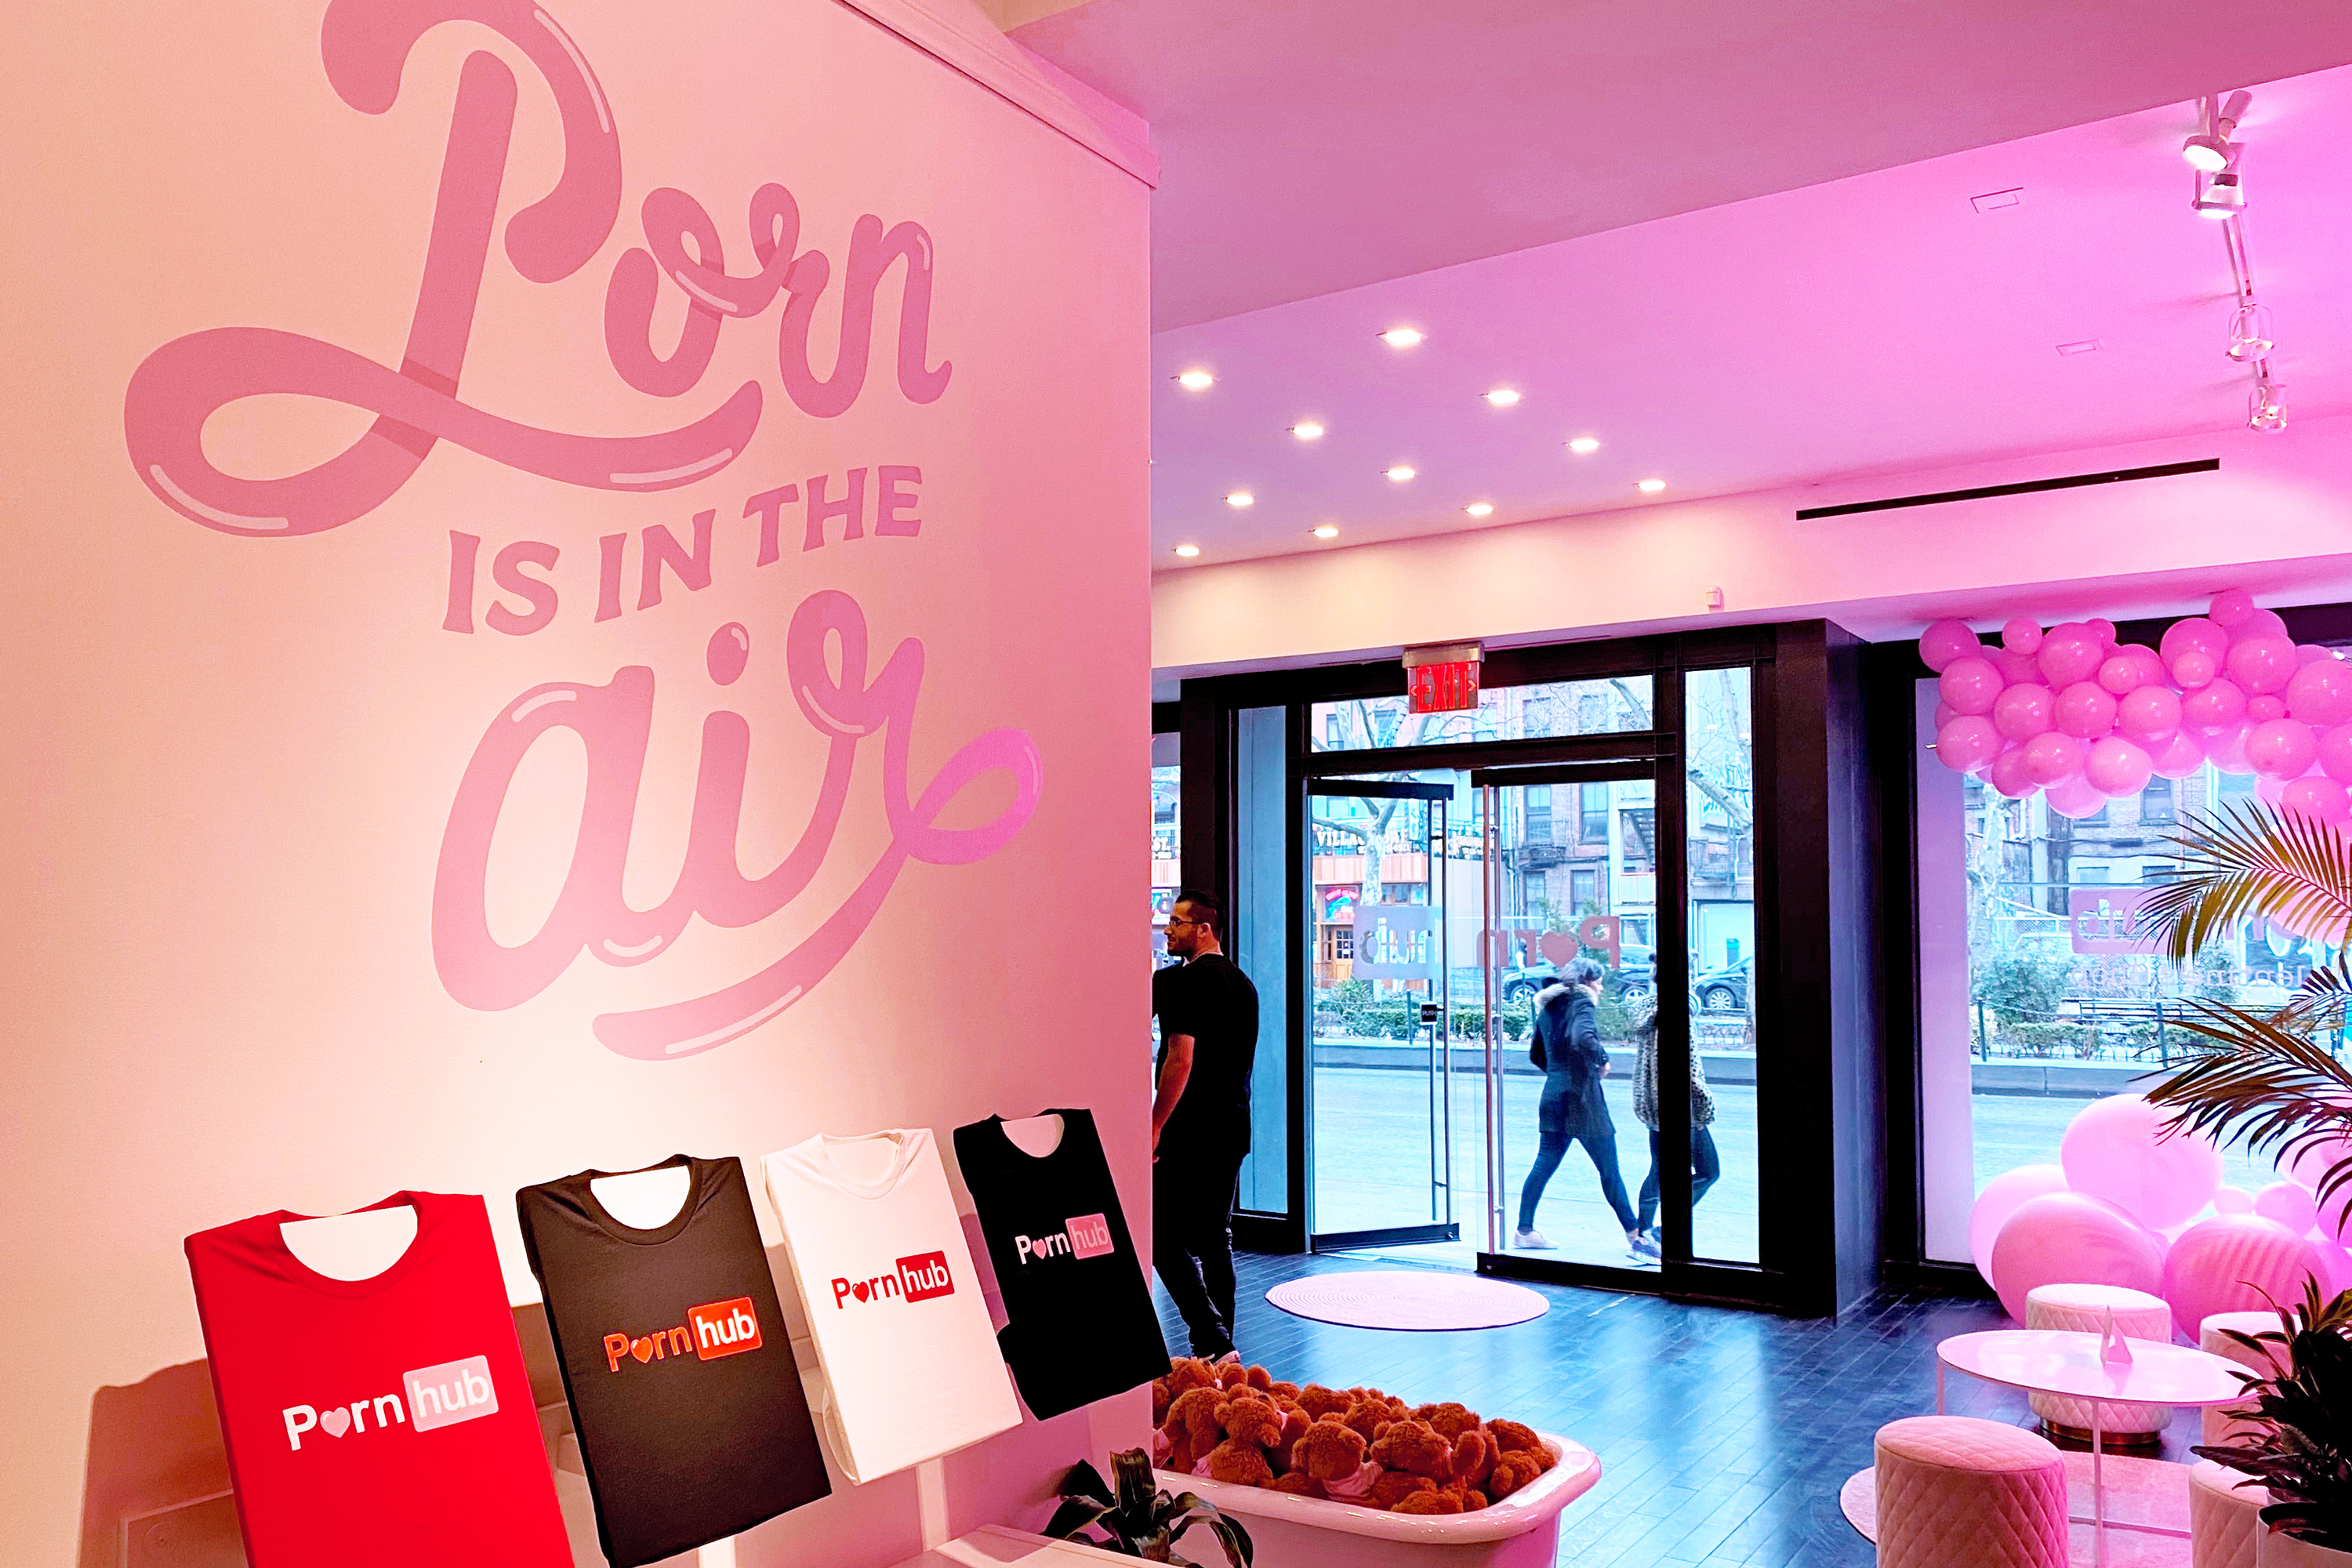 Inside Pornhub's unexpectedly buttoned-up Valentine's Day pop-up